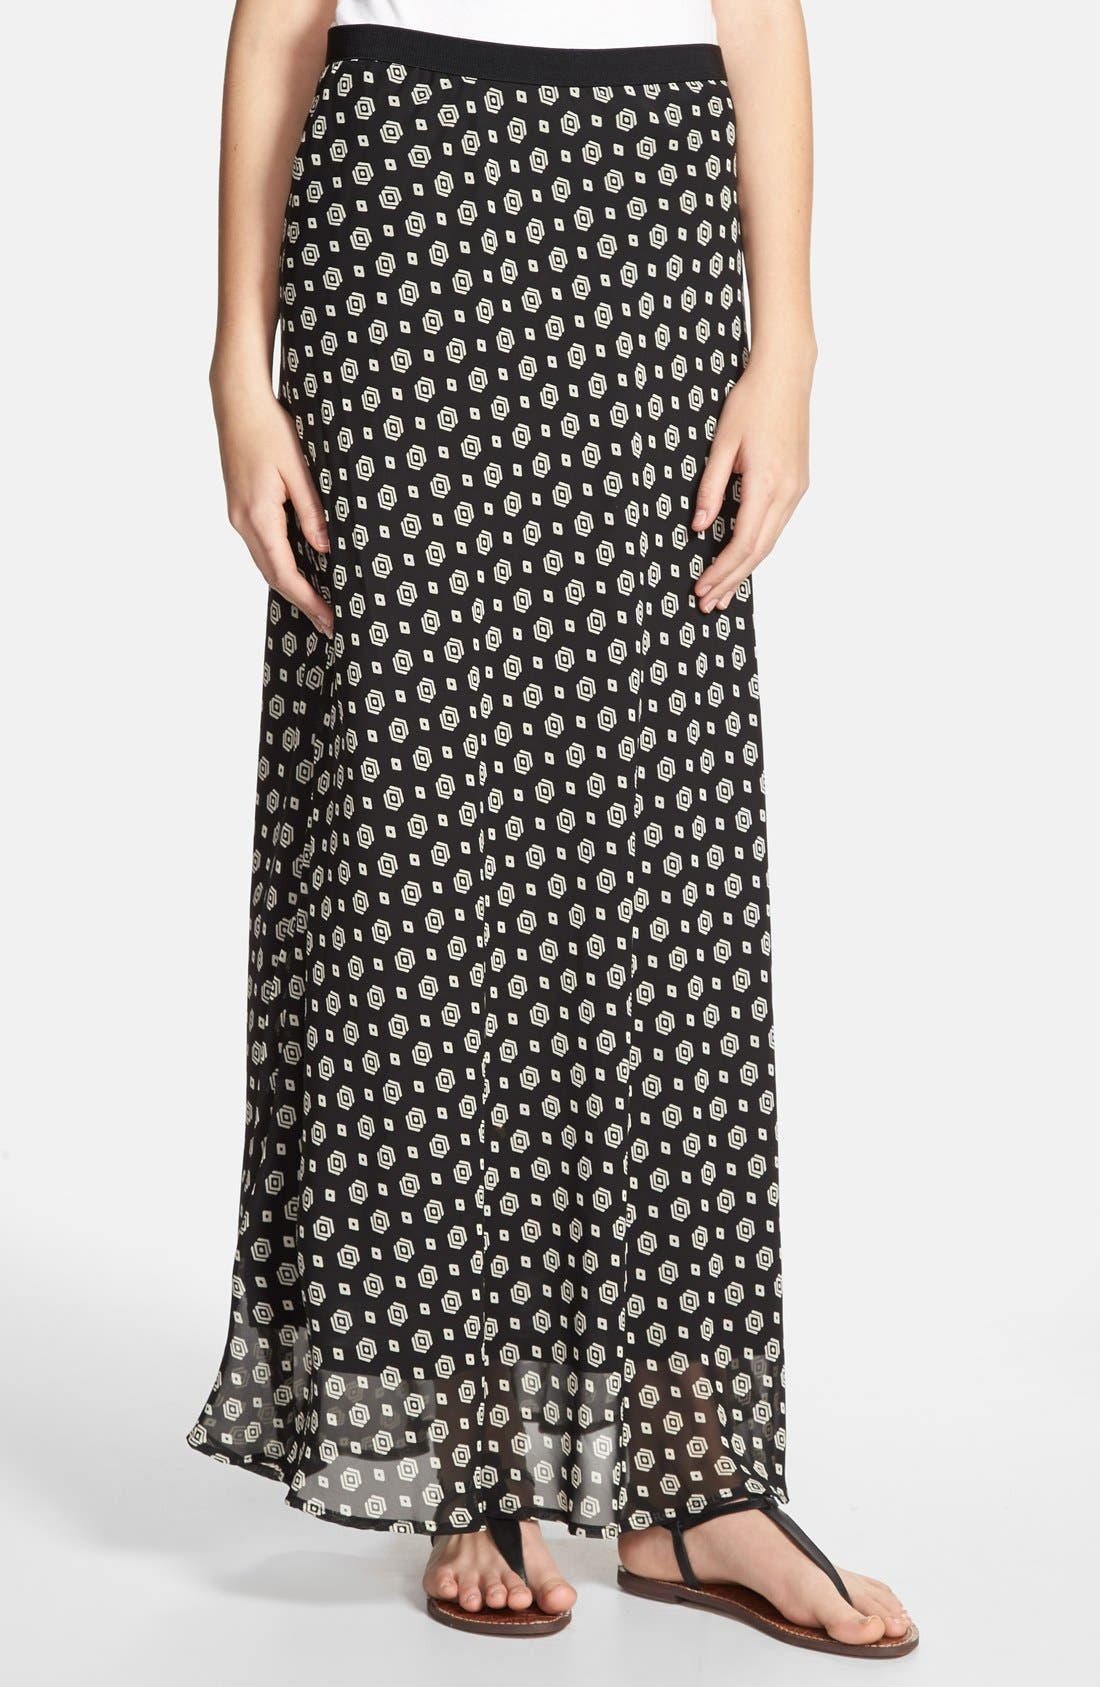 Alternate Image 1 Selected - Pleione Foulard Print Maxi Skirt